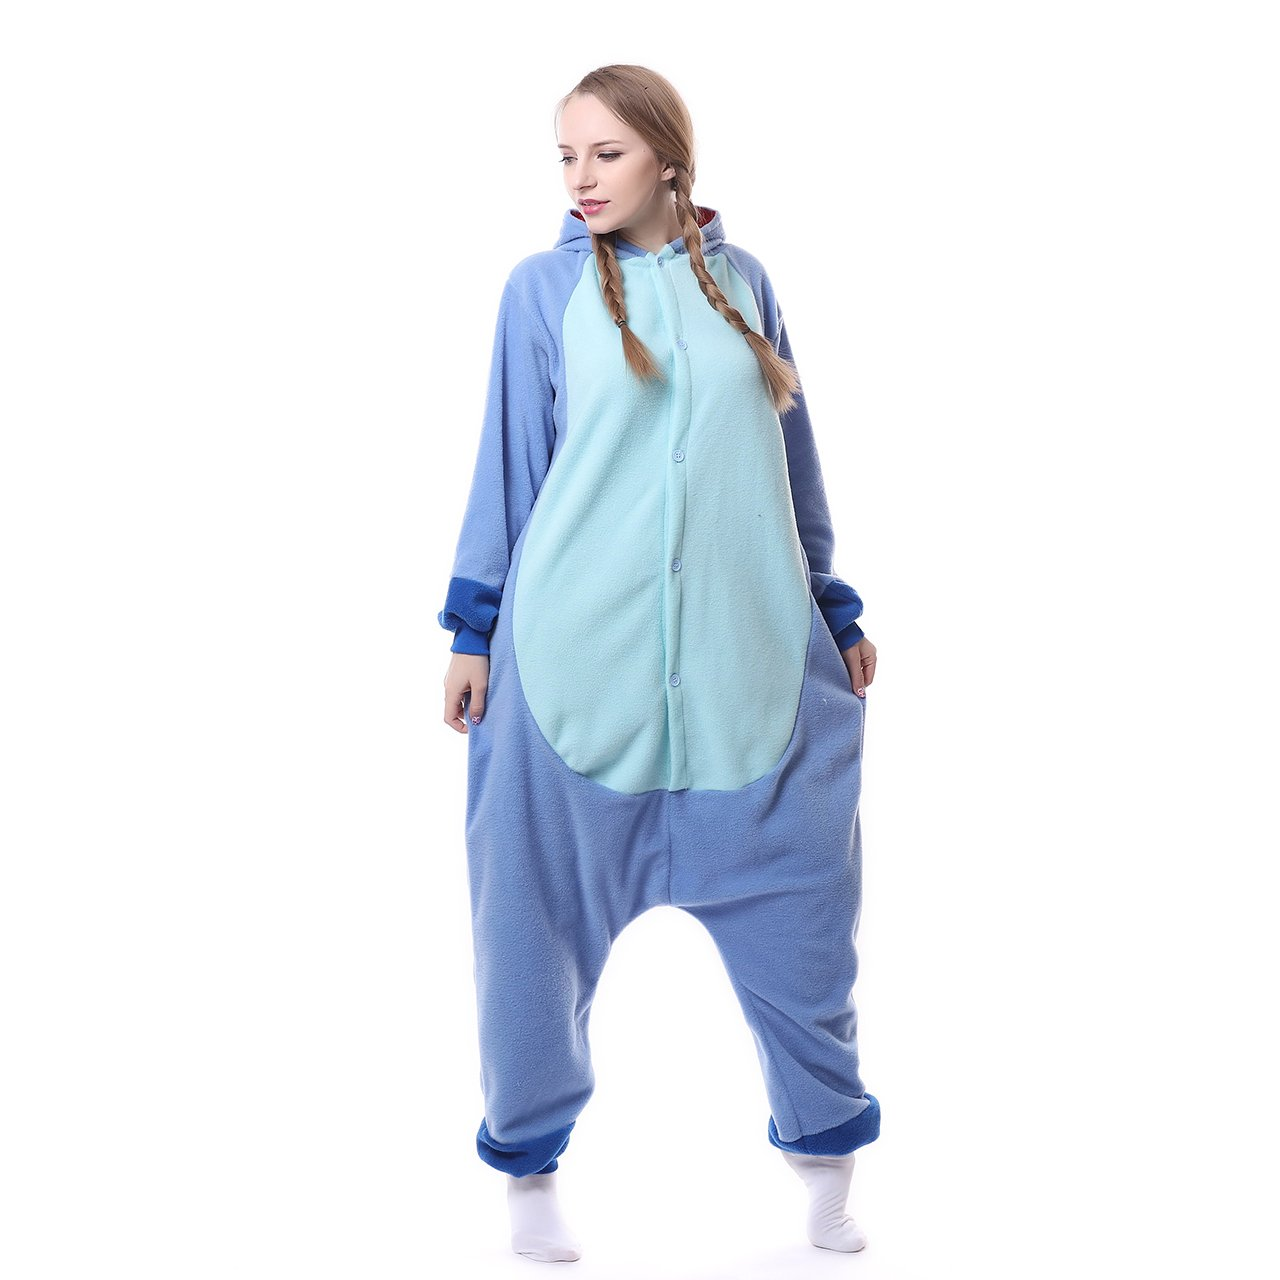 MEILIS Cartoon Sleepsuit Costume Cosplay Lounge Wear Kigurumi Onesie Pajamas Stitch,Birthday or Christmas Gift,Blue by MEILIS (Image #5)